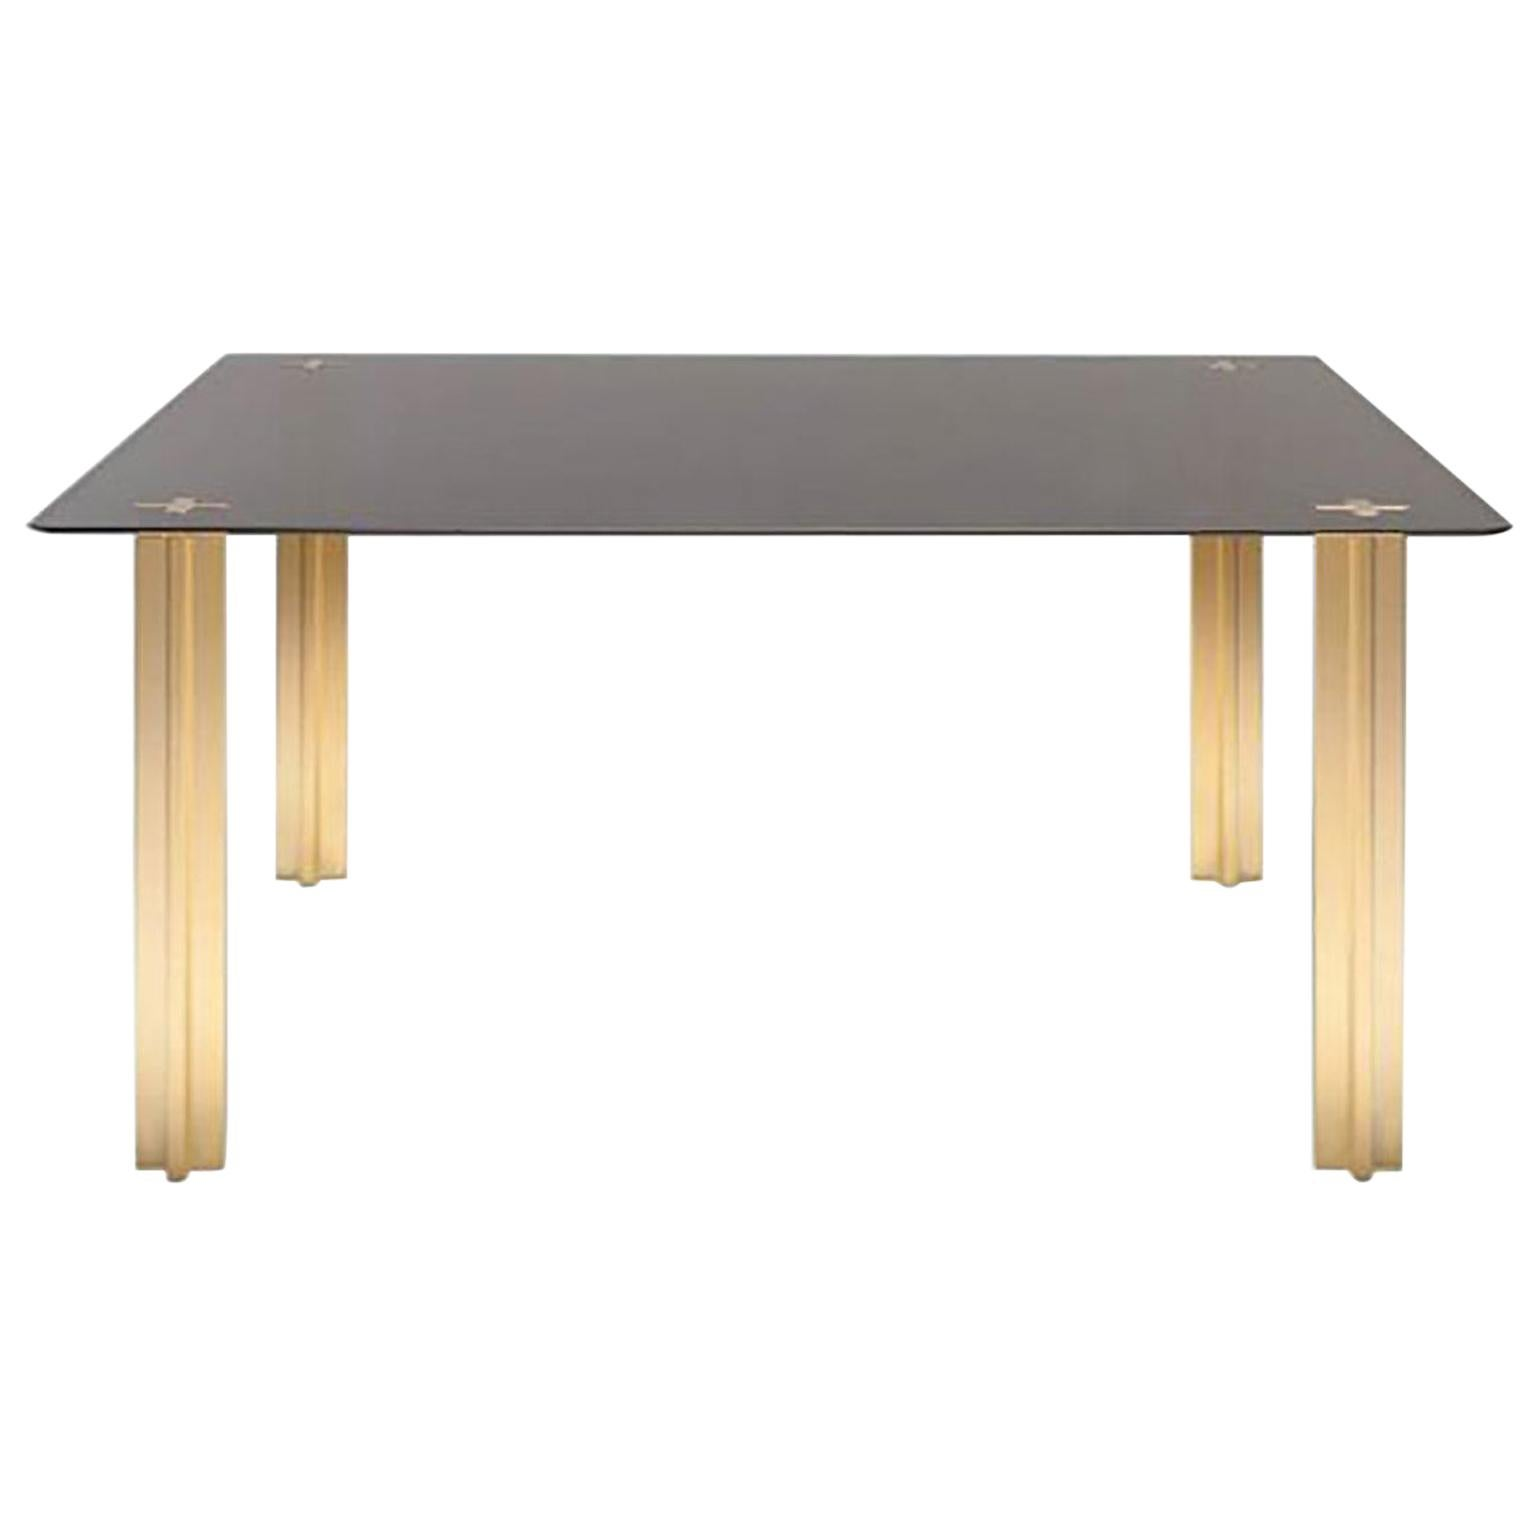 Gold Contemporary Square Table, Smoke Glass Top and Gold-Plated Aluminium Legs